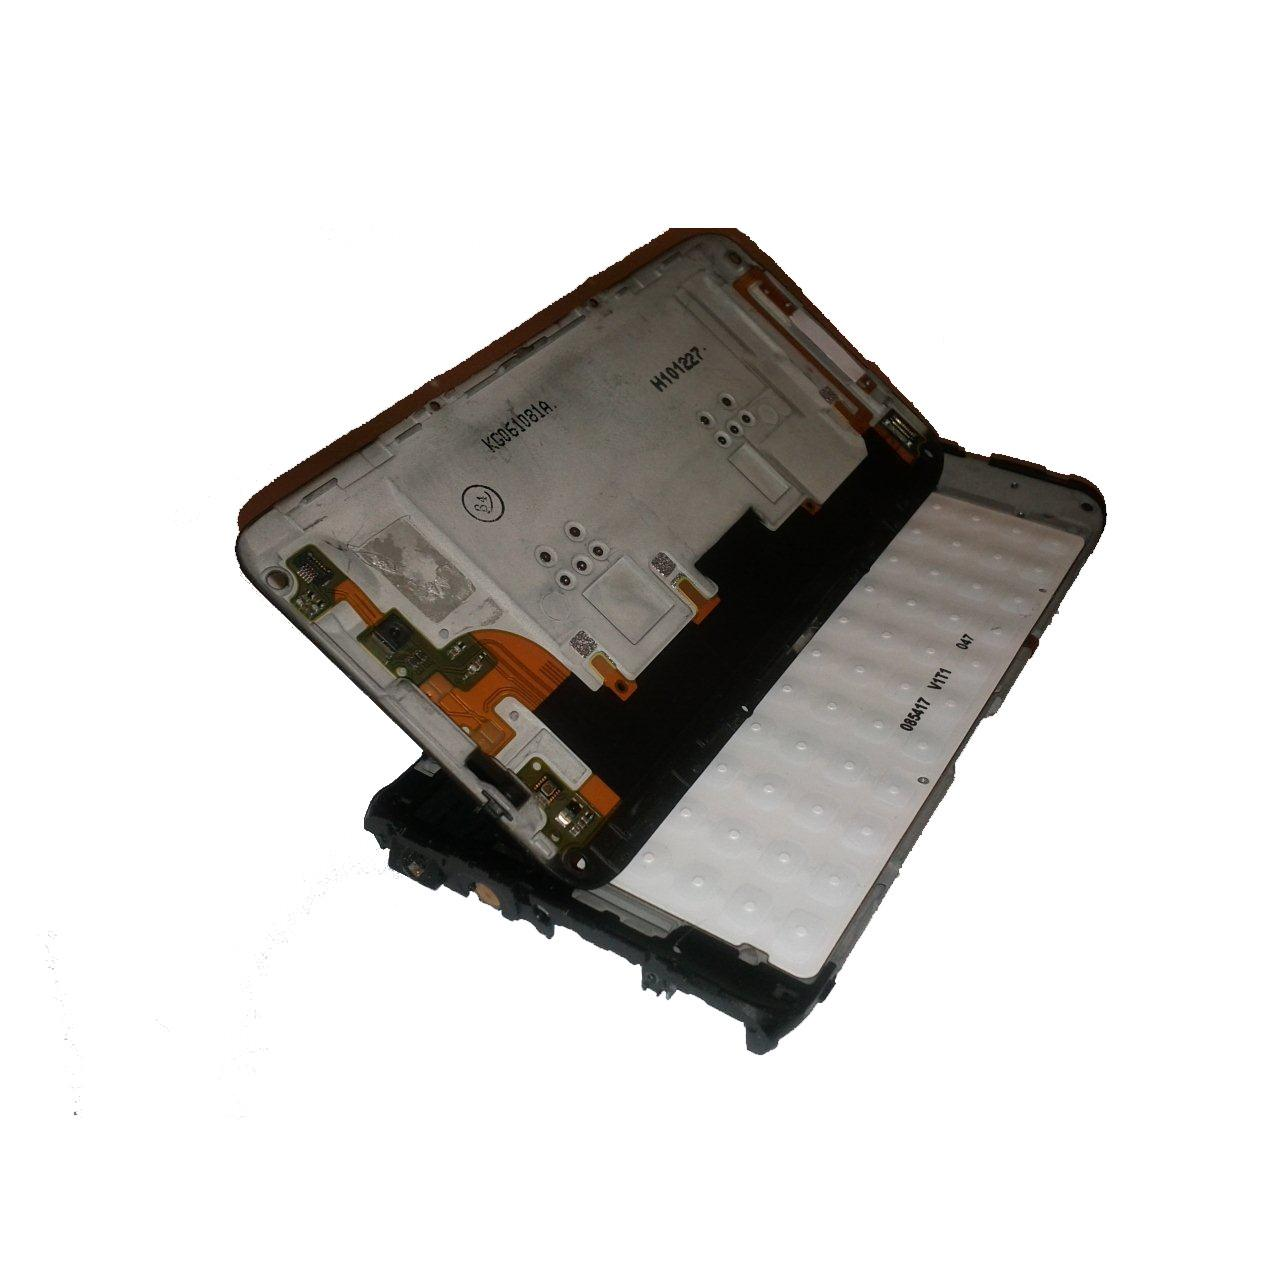 Wholesale NOKIA E7 MIDDLE HOUSING WITH KEYPAD BOARD AND CAMERA FLEX CABLE from china suppliers